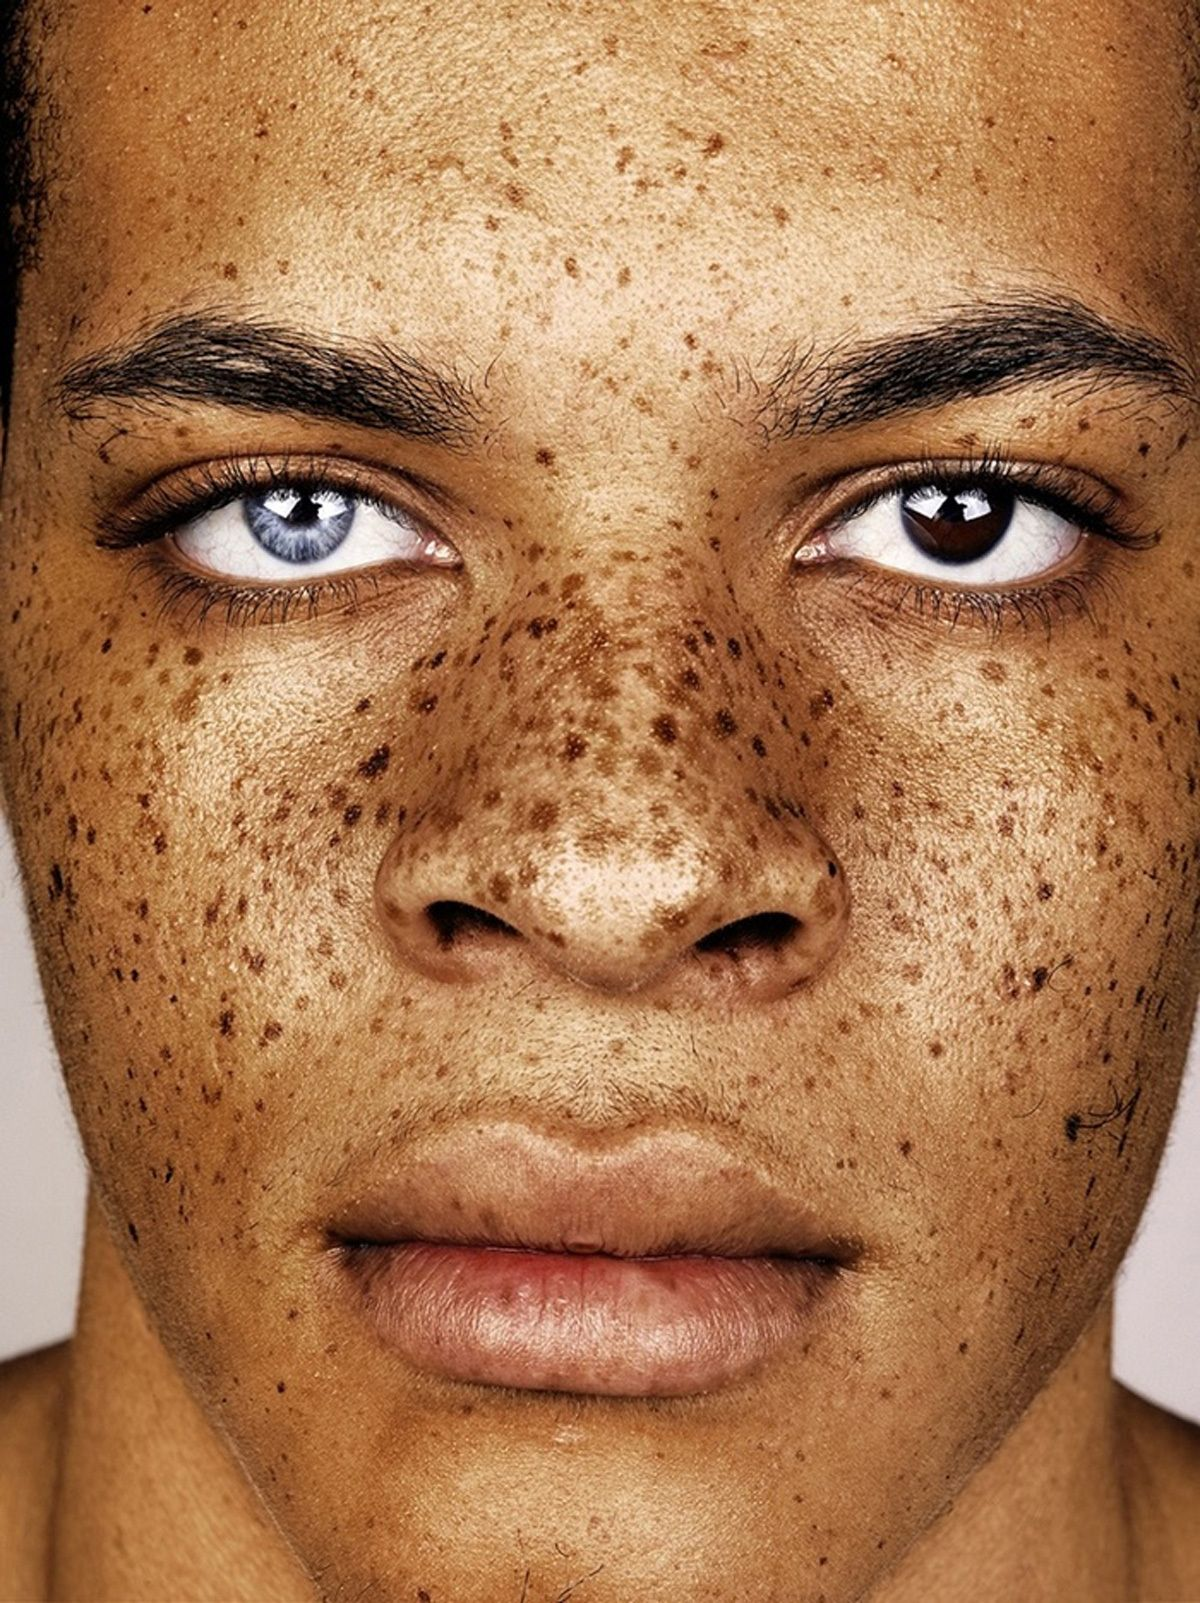 Seth Treston Minimalist connecting the dots and finding beauty in freckles | face, eye